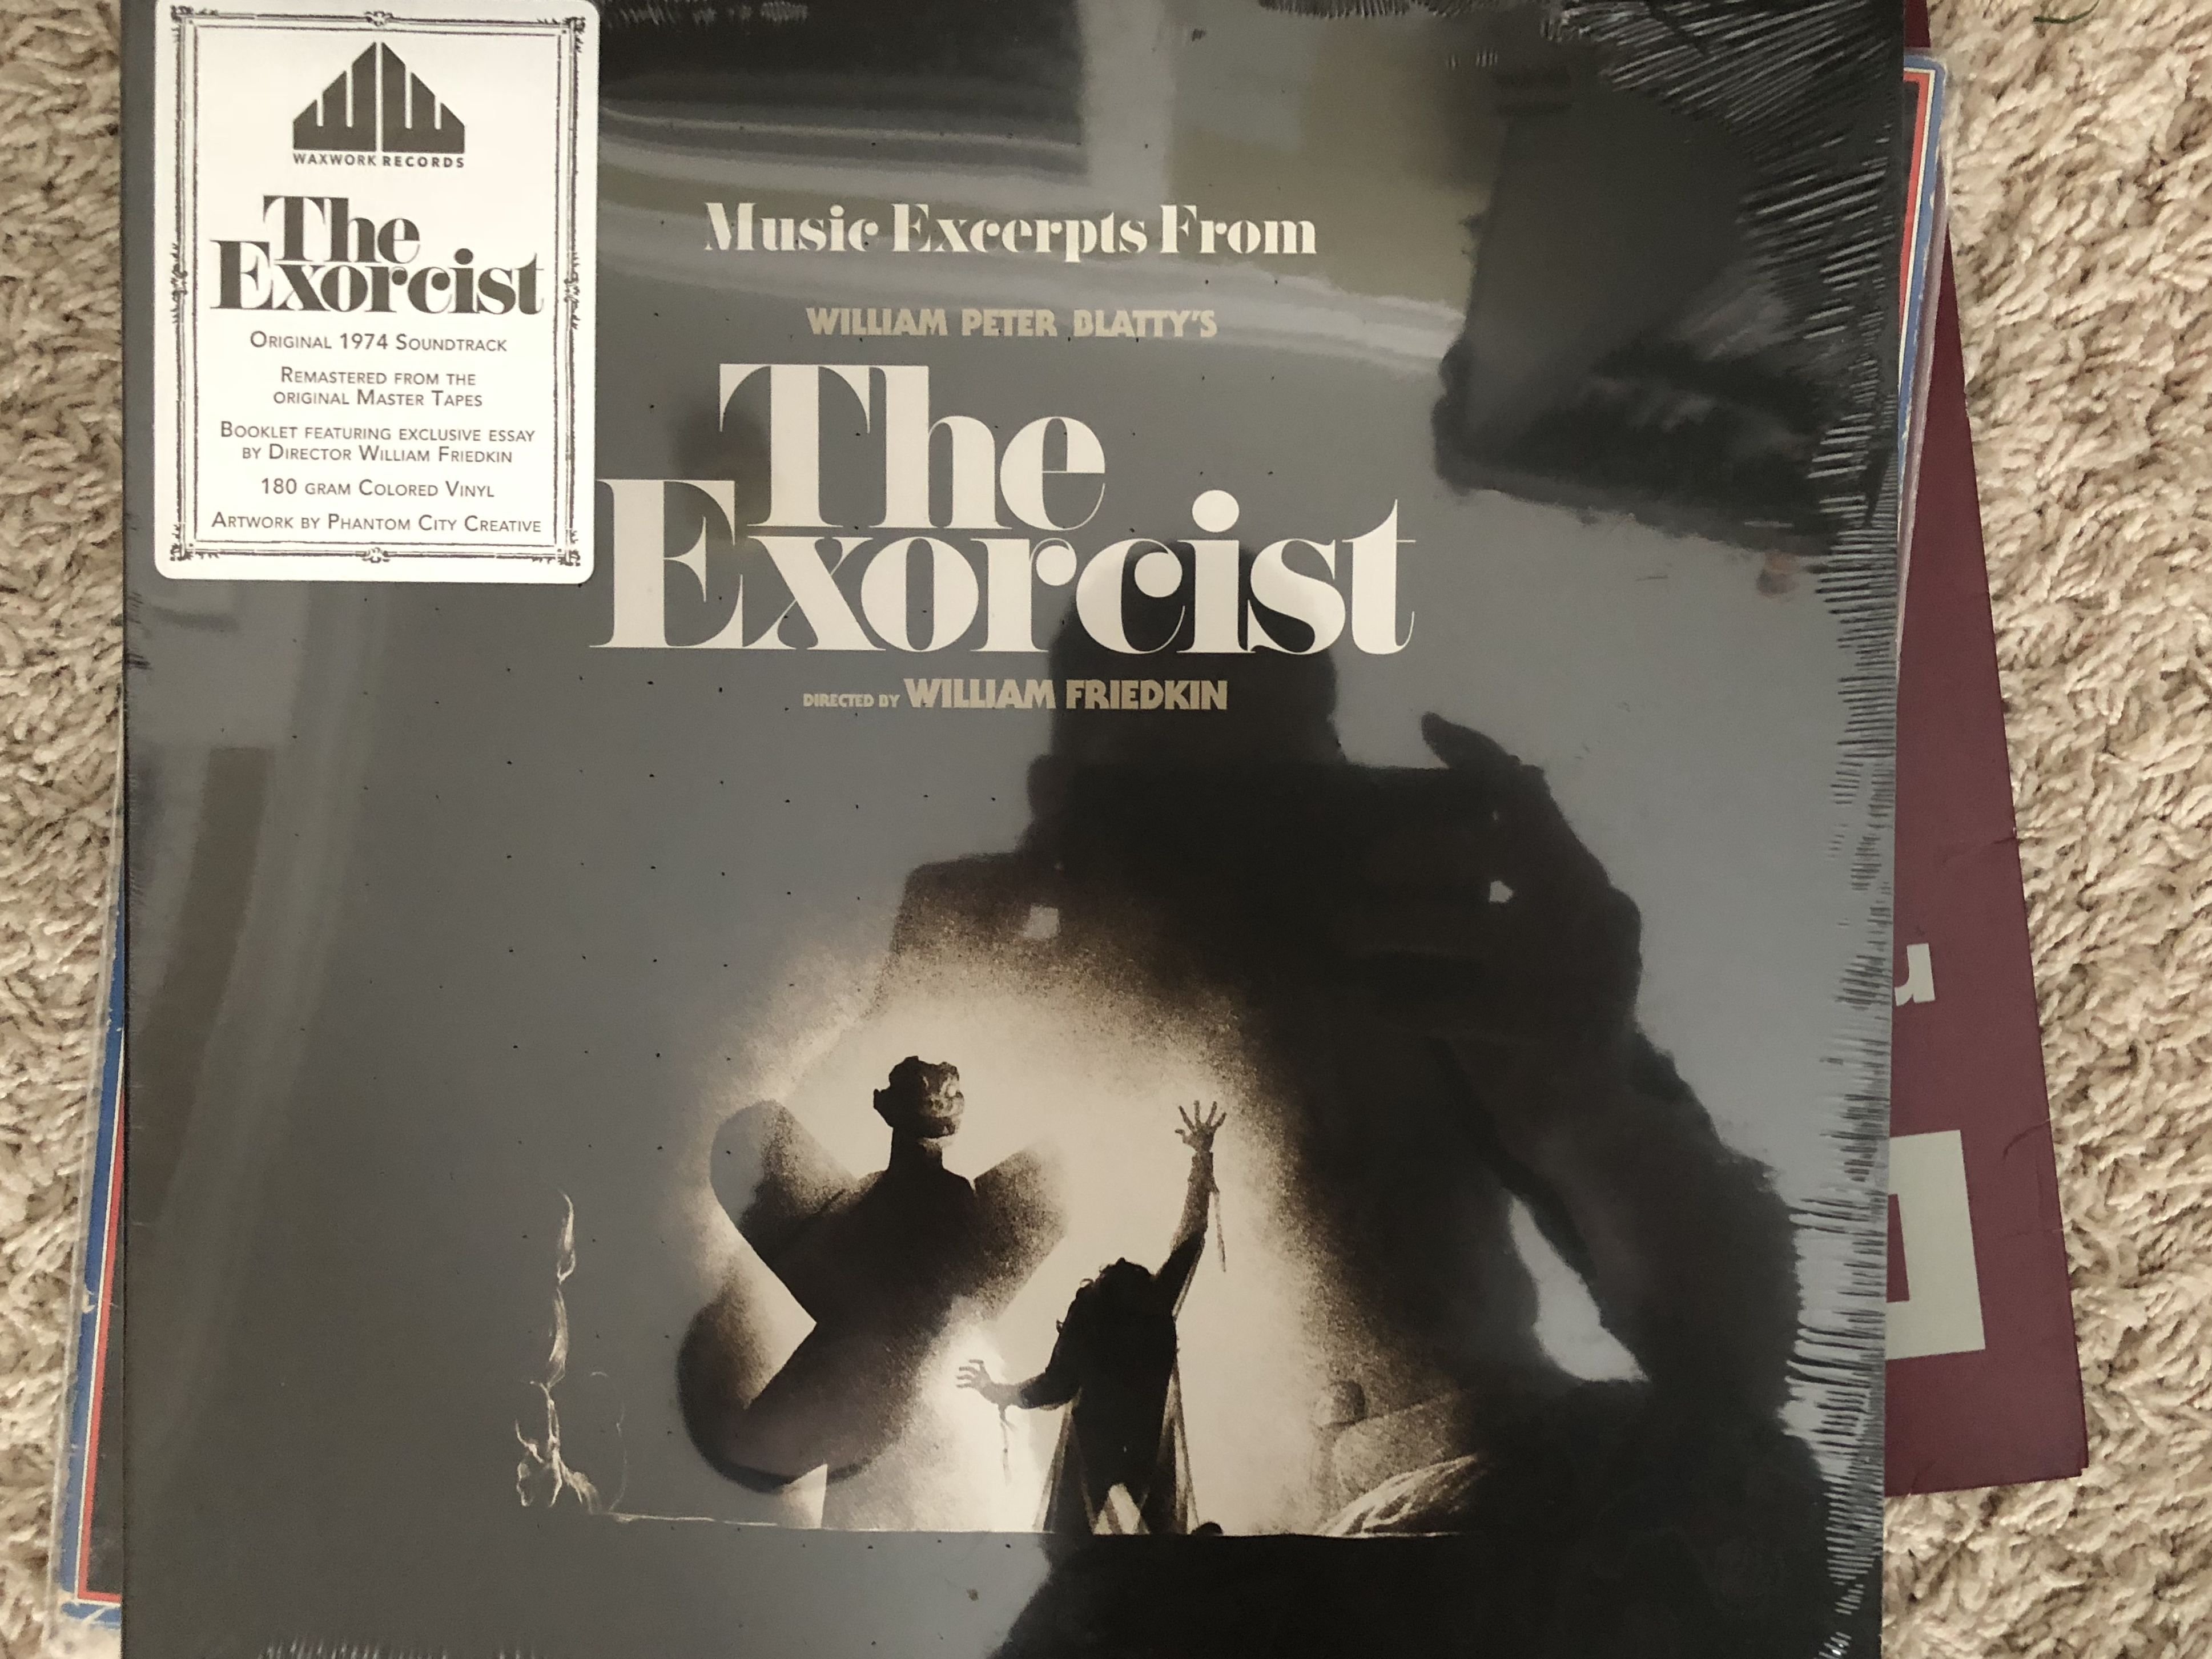 The Exorcist Soundtrack Waxworks Colored Vinyl Vinyl Record Collection Vinyl Vinyl Records